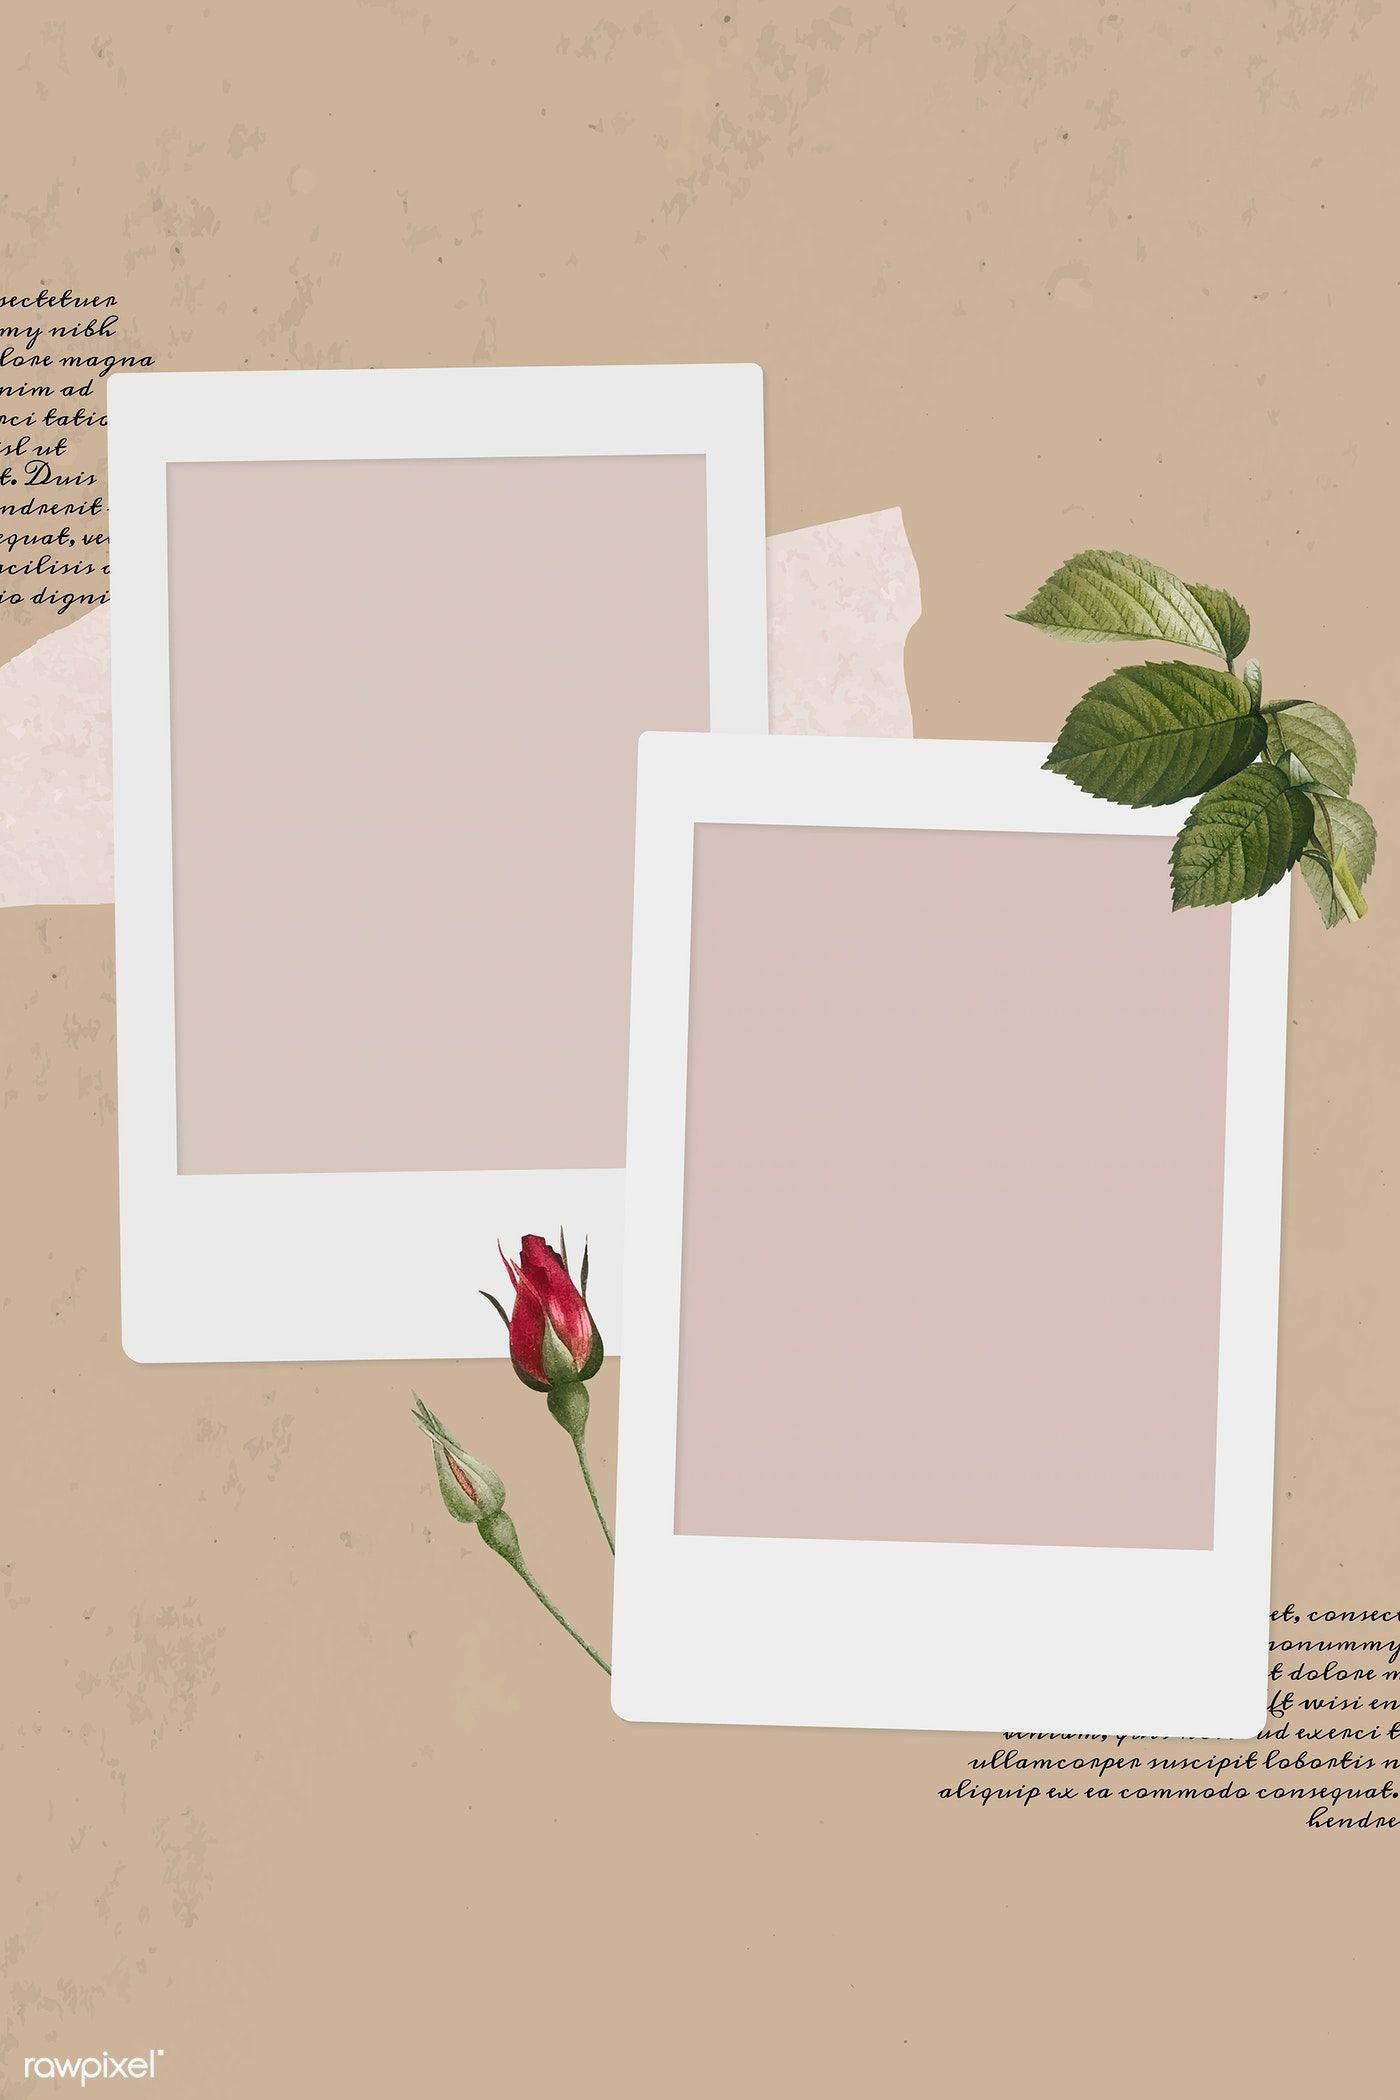 Download premium vector of Blank collage photo frame